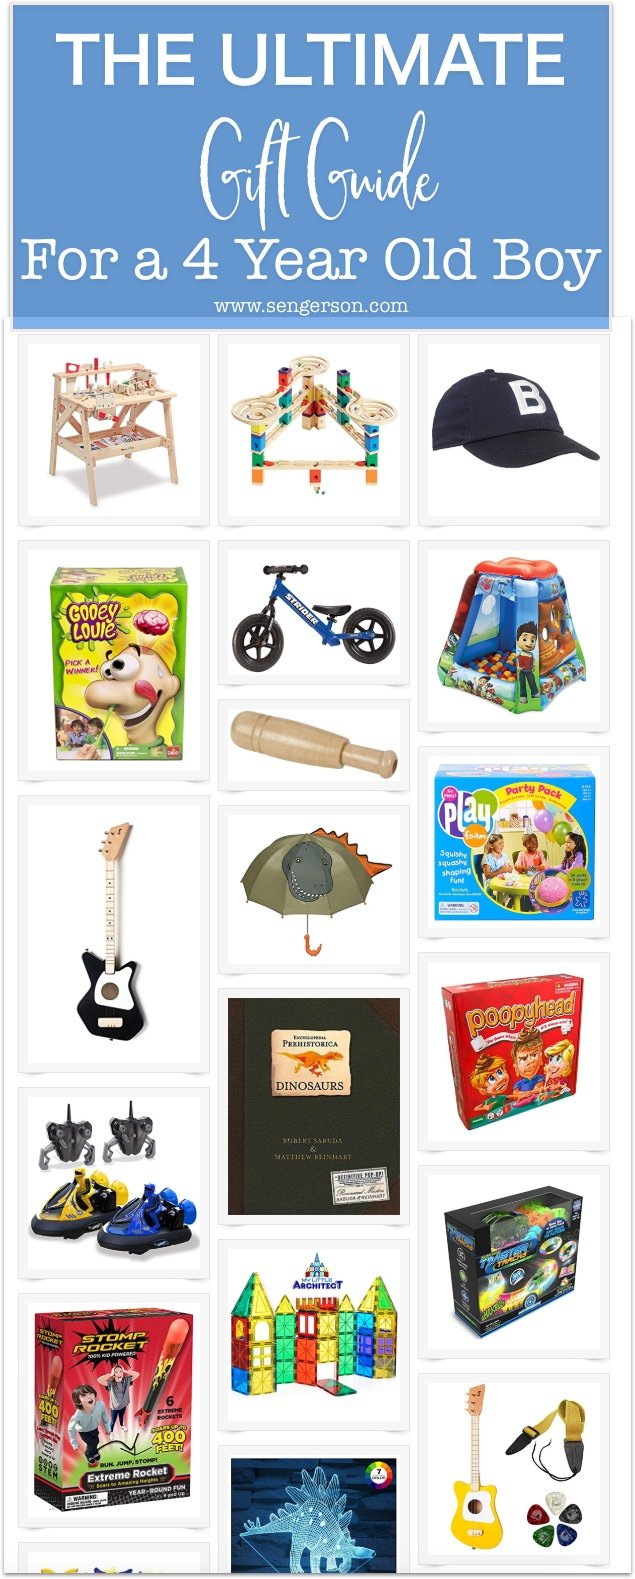 Best Gifts for 4 Year Old Boy